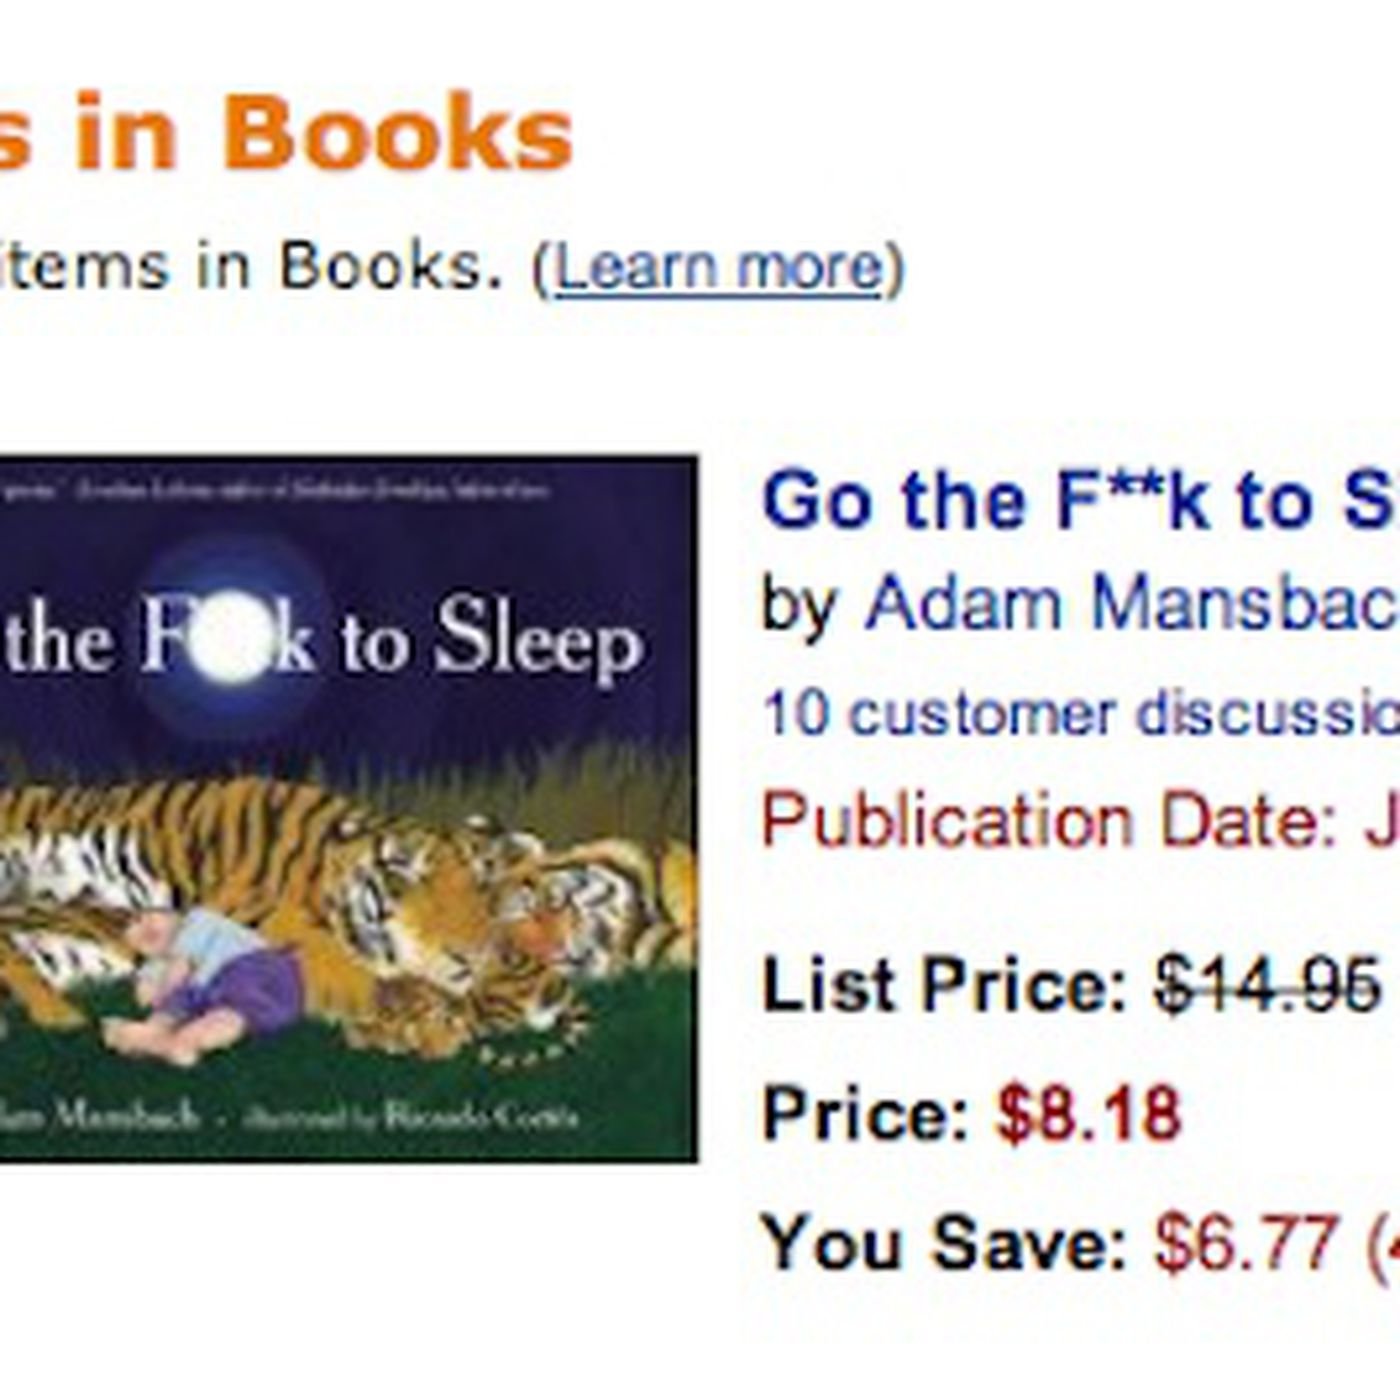 Profanity Laced Nursery Rhymes Book Go The F K To Sleep Is S 1 Bester And It Hasn T Even Been Released Yet